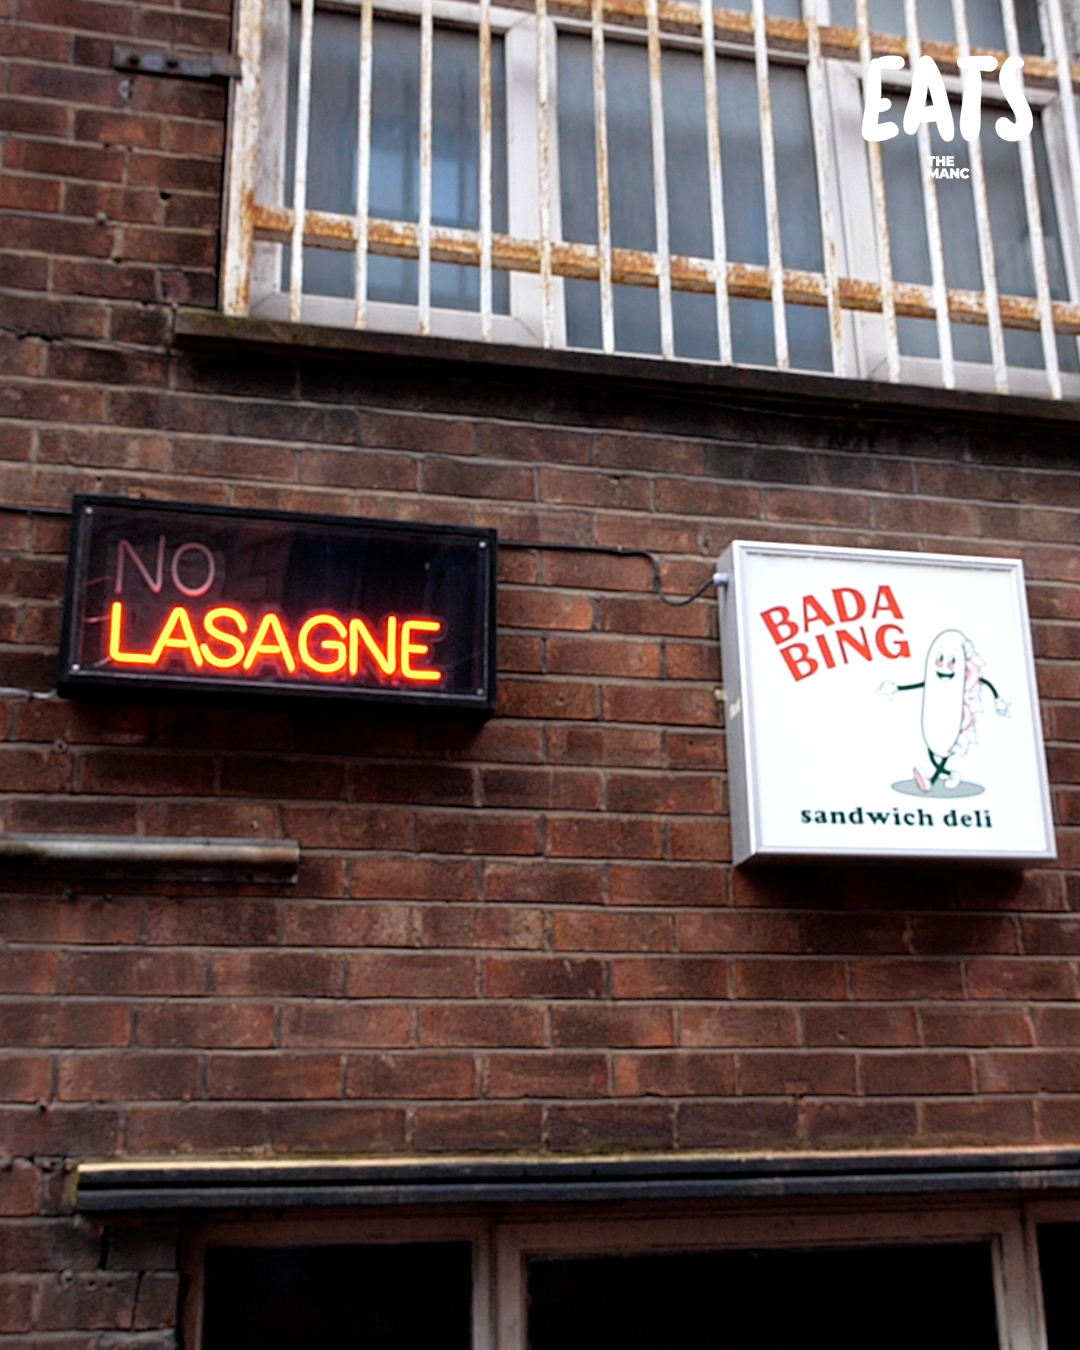 Inside the lasagne speakeasy and sandwich shop on the outskirts of Ancoats, The Manc